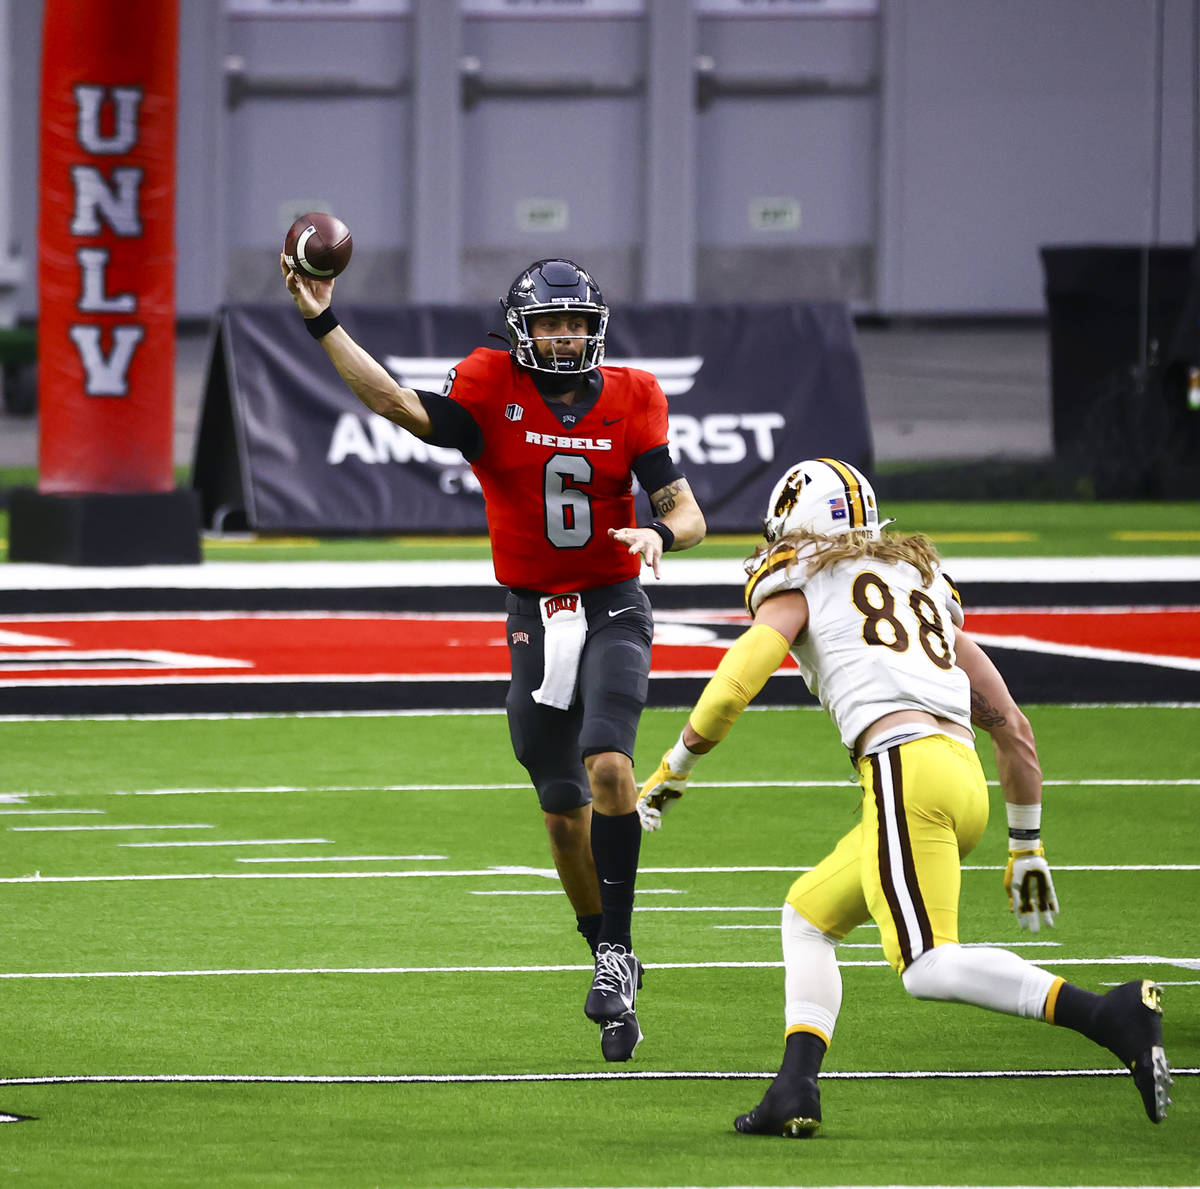 UNLV Rebels quarterback Max Gilliam (6) looks to throw under pressure from Wyoming Cowboys defe ...